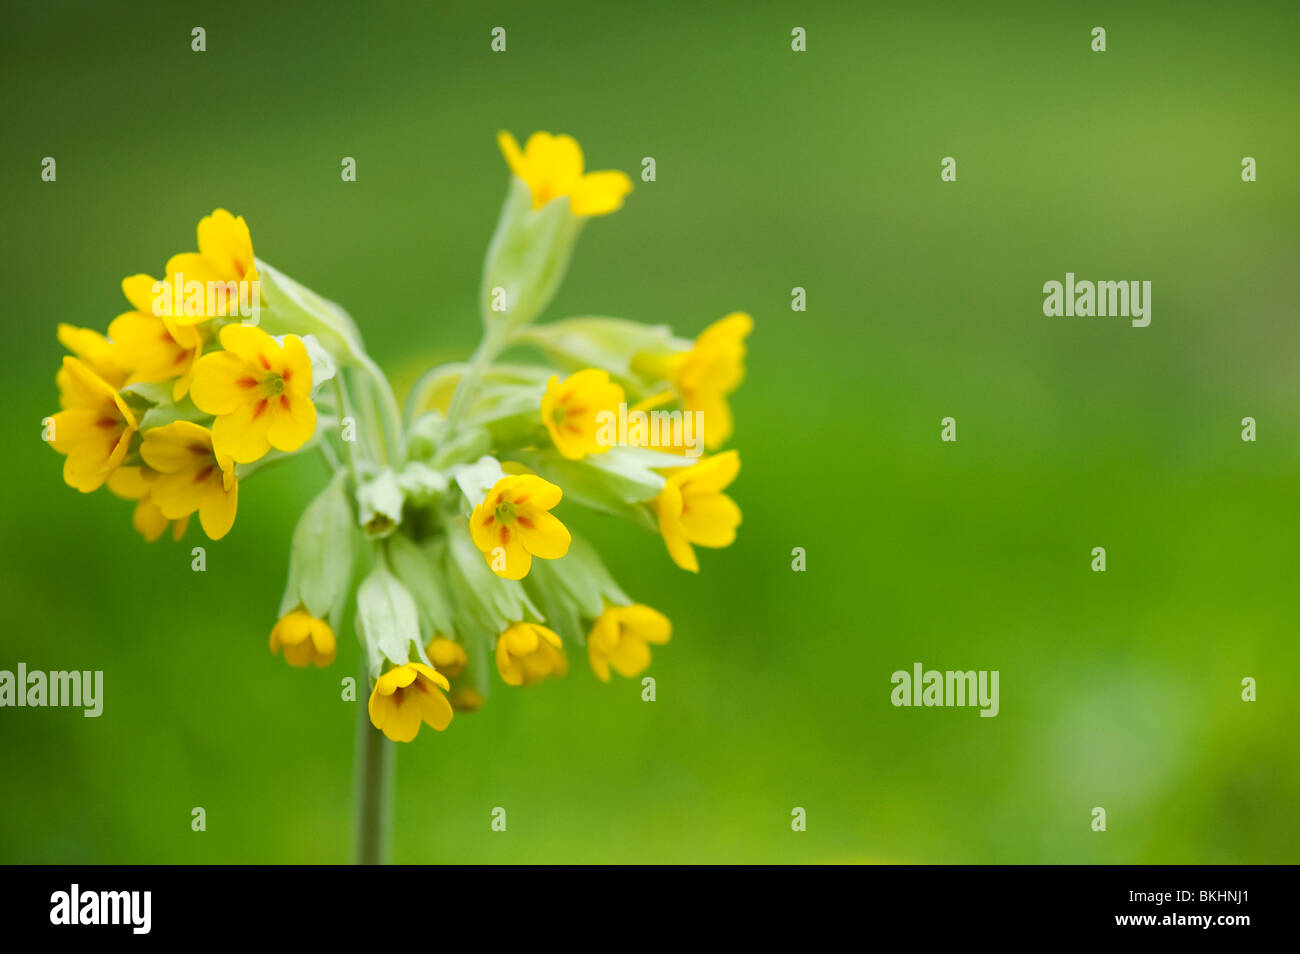 Primula veris. Cowslip flower in the grass Stock Photo